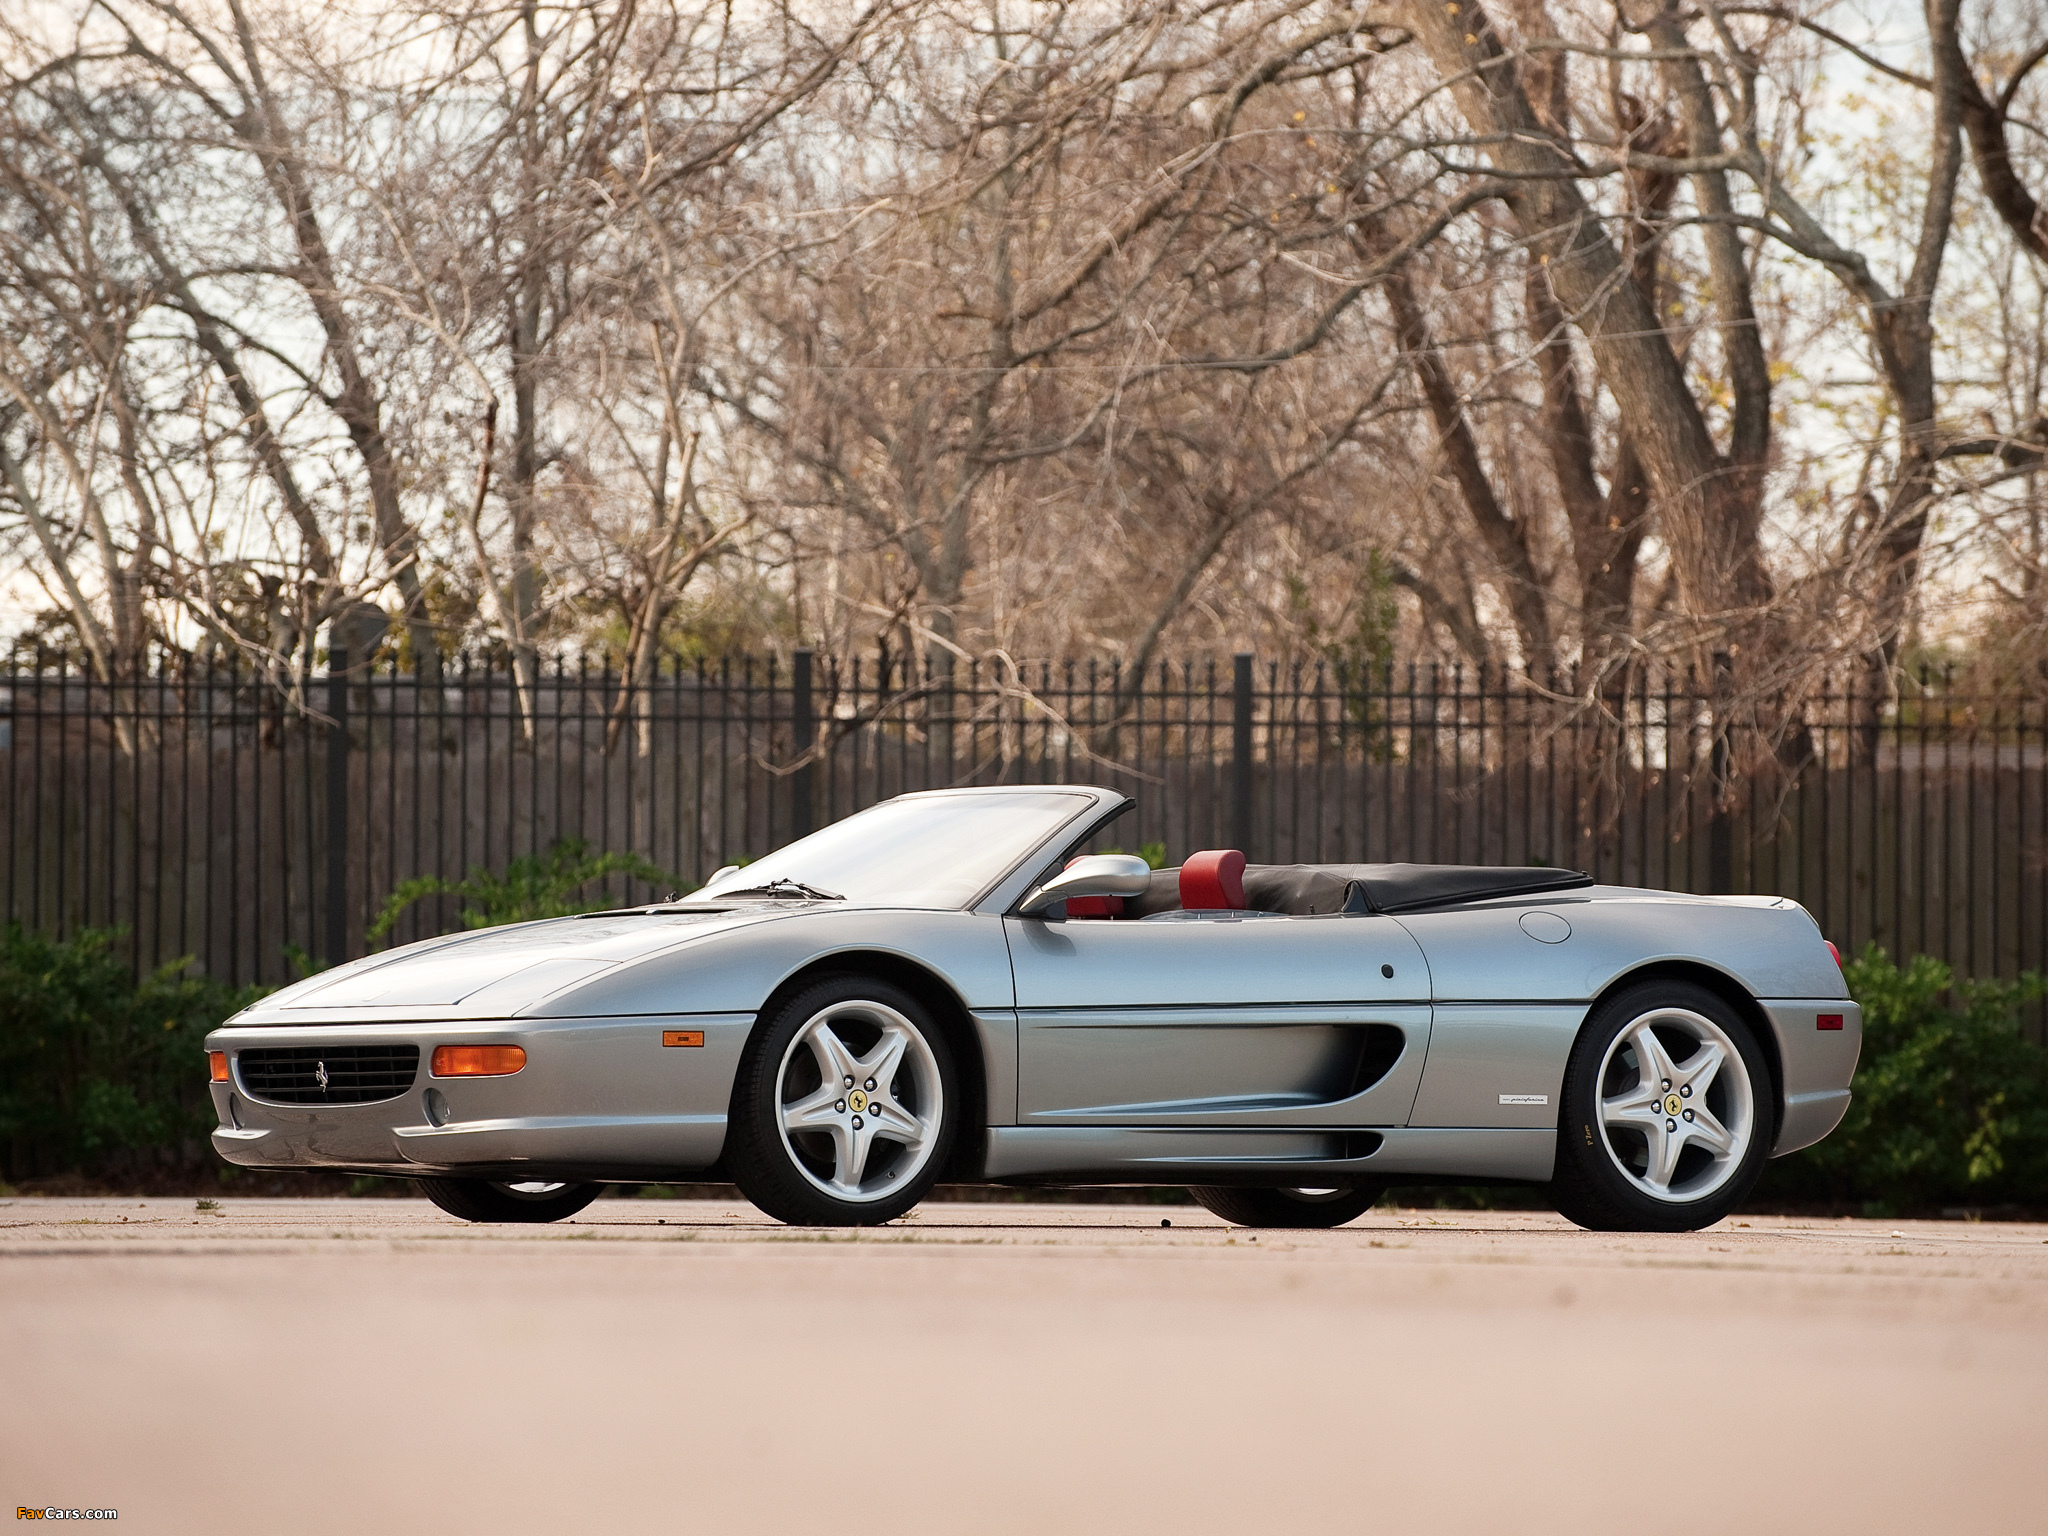 ferrari f355 spider wallpaper - photo #11